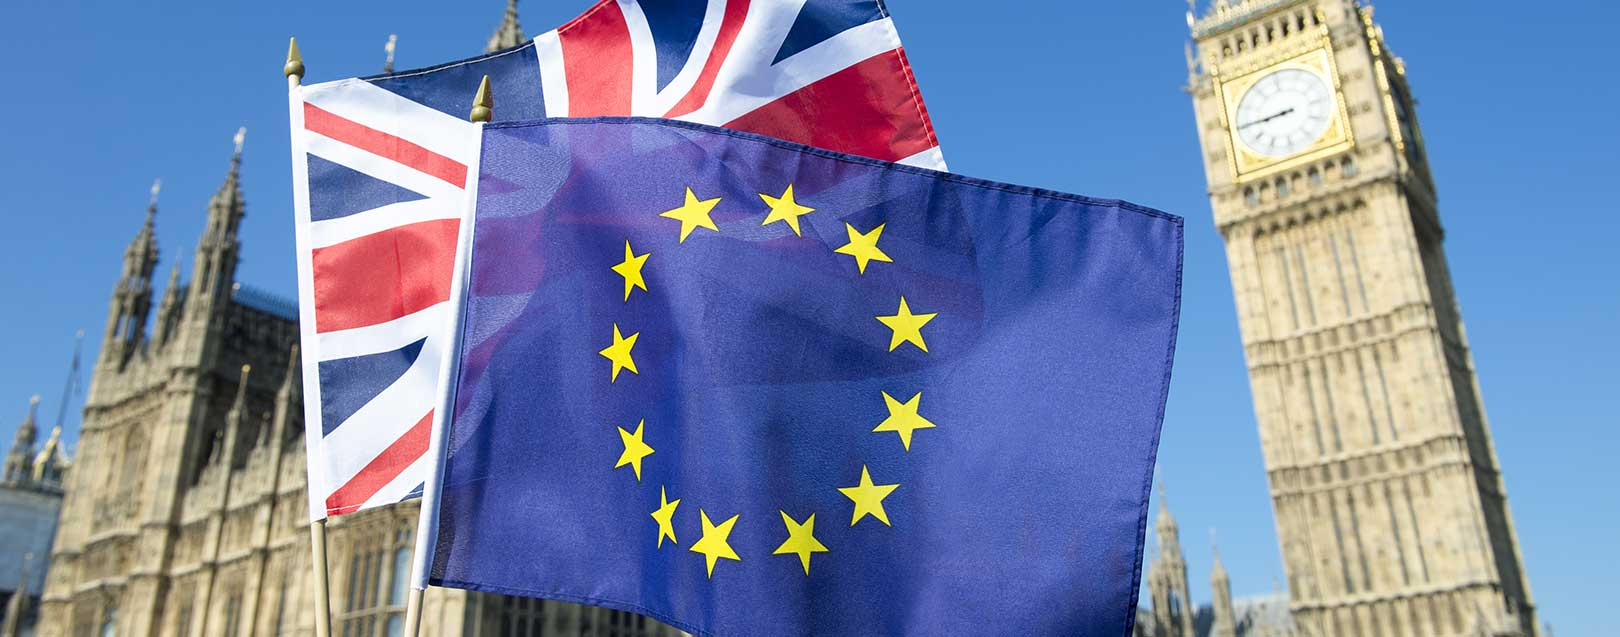 'EU nationals to face same visa requirements as others, post Brexit'